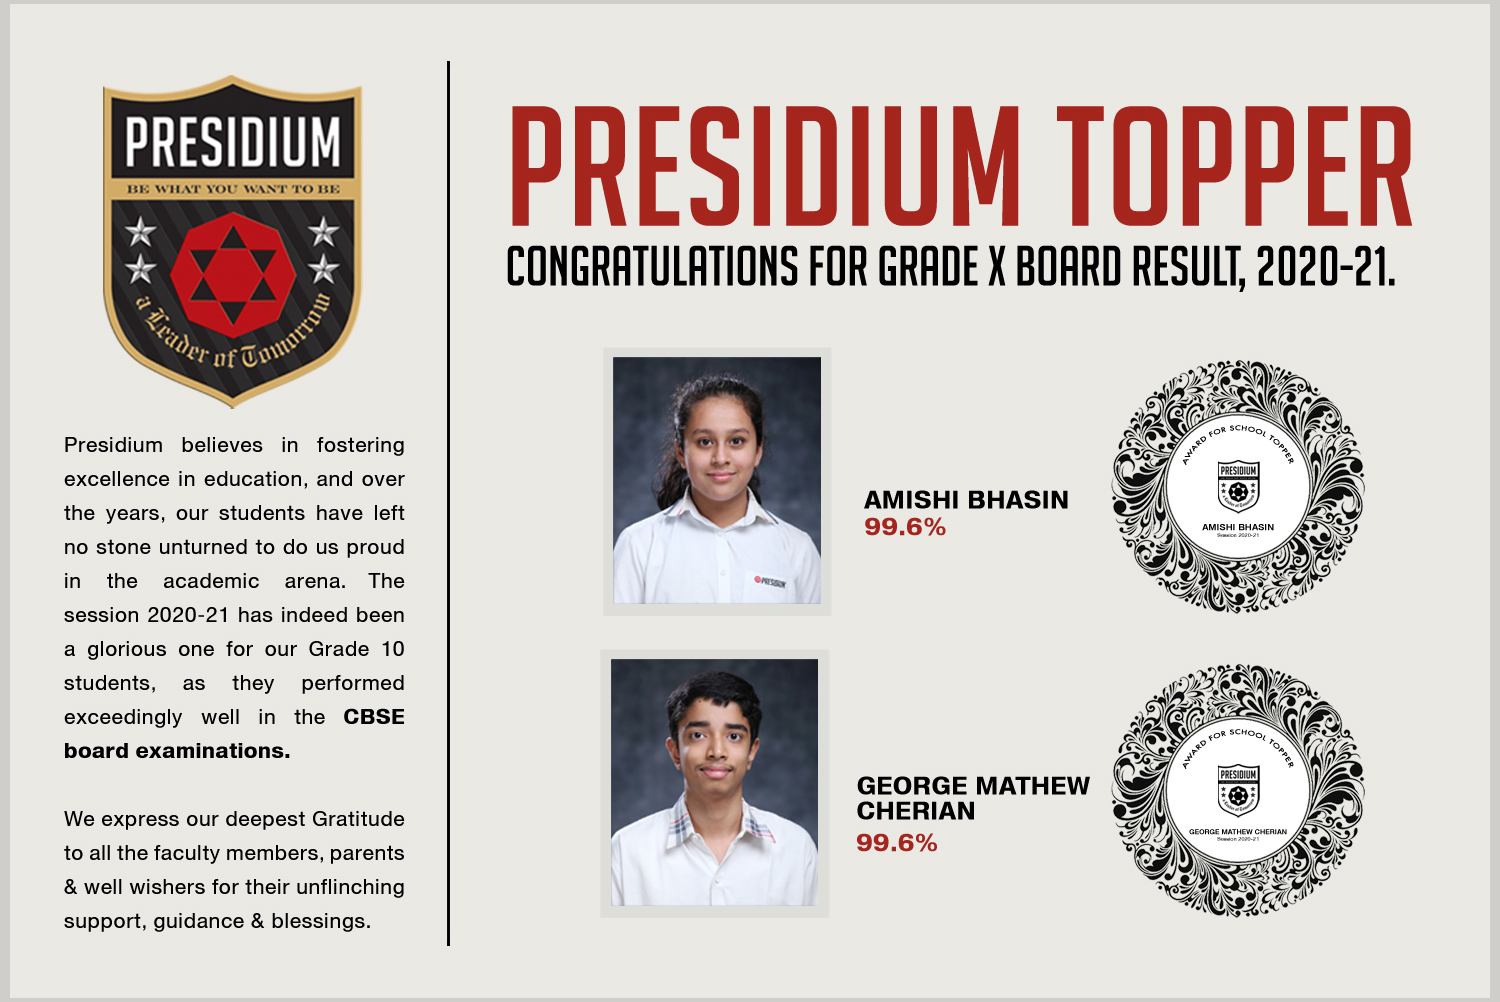 CBSE GRADE X RESULTS(2020-21): PRESIDIANS ACE WITH PERFECT SCORES